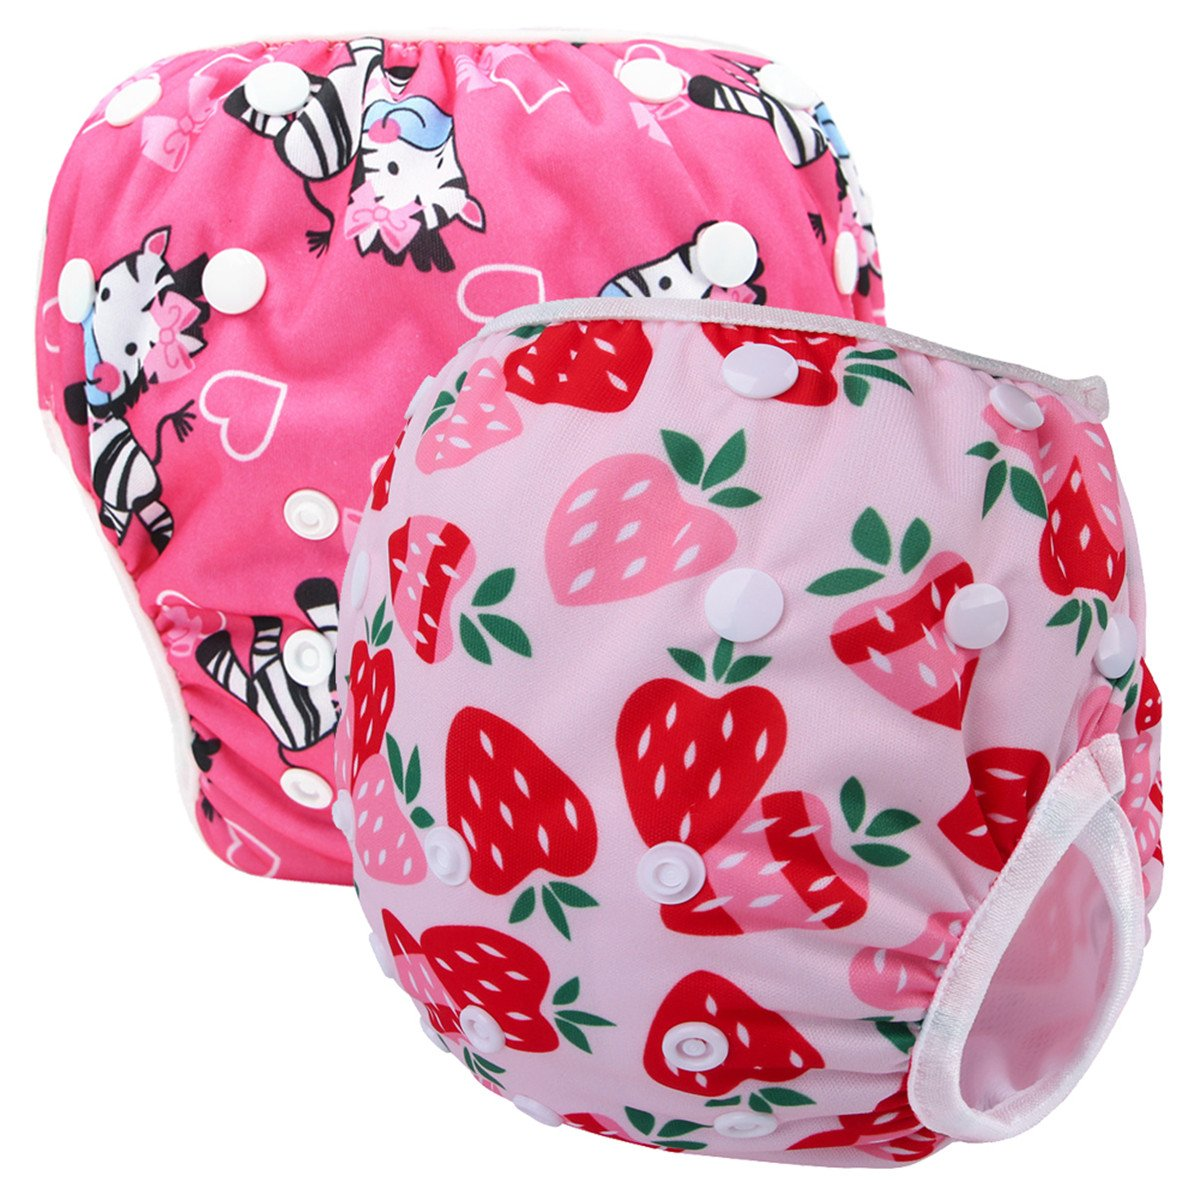 Storeofbaby 2pcs Baby Girls' Swim Diapers Reusable Washable Waterproof Cloth Cover by storeofbaby